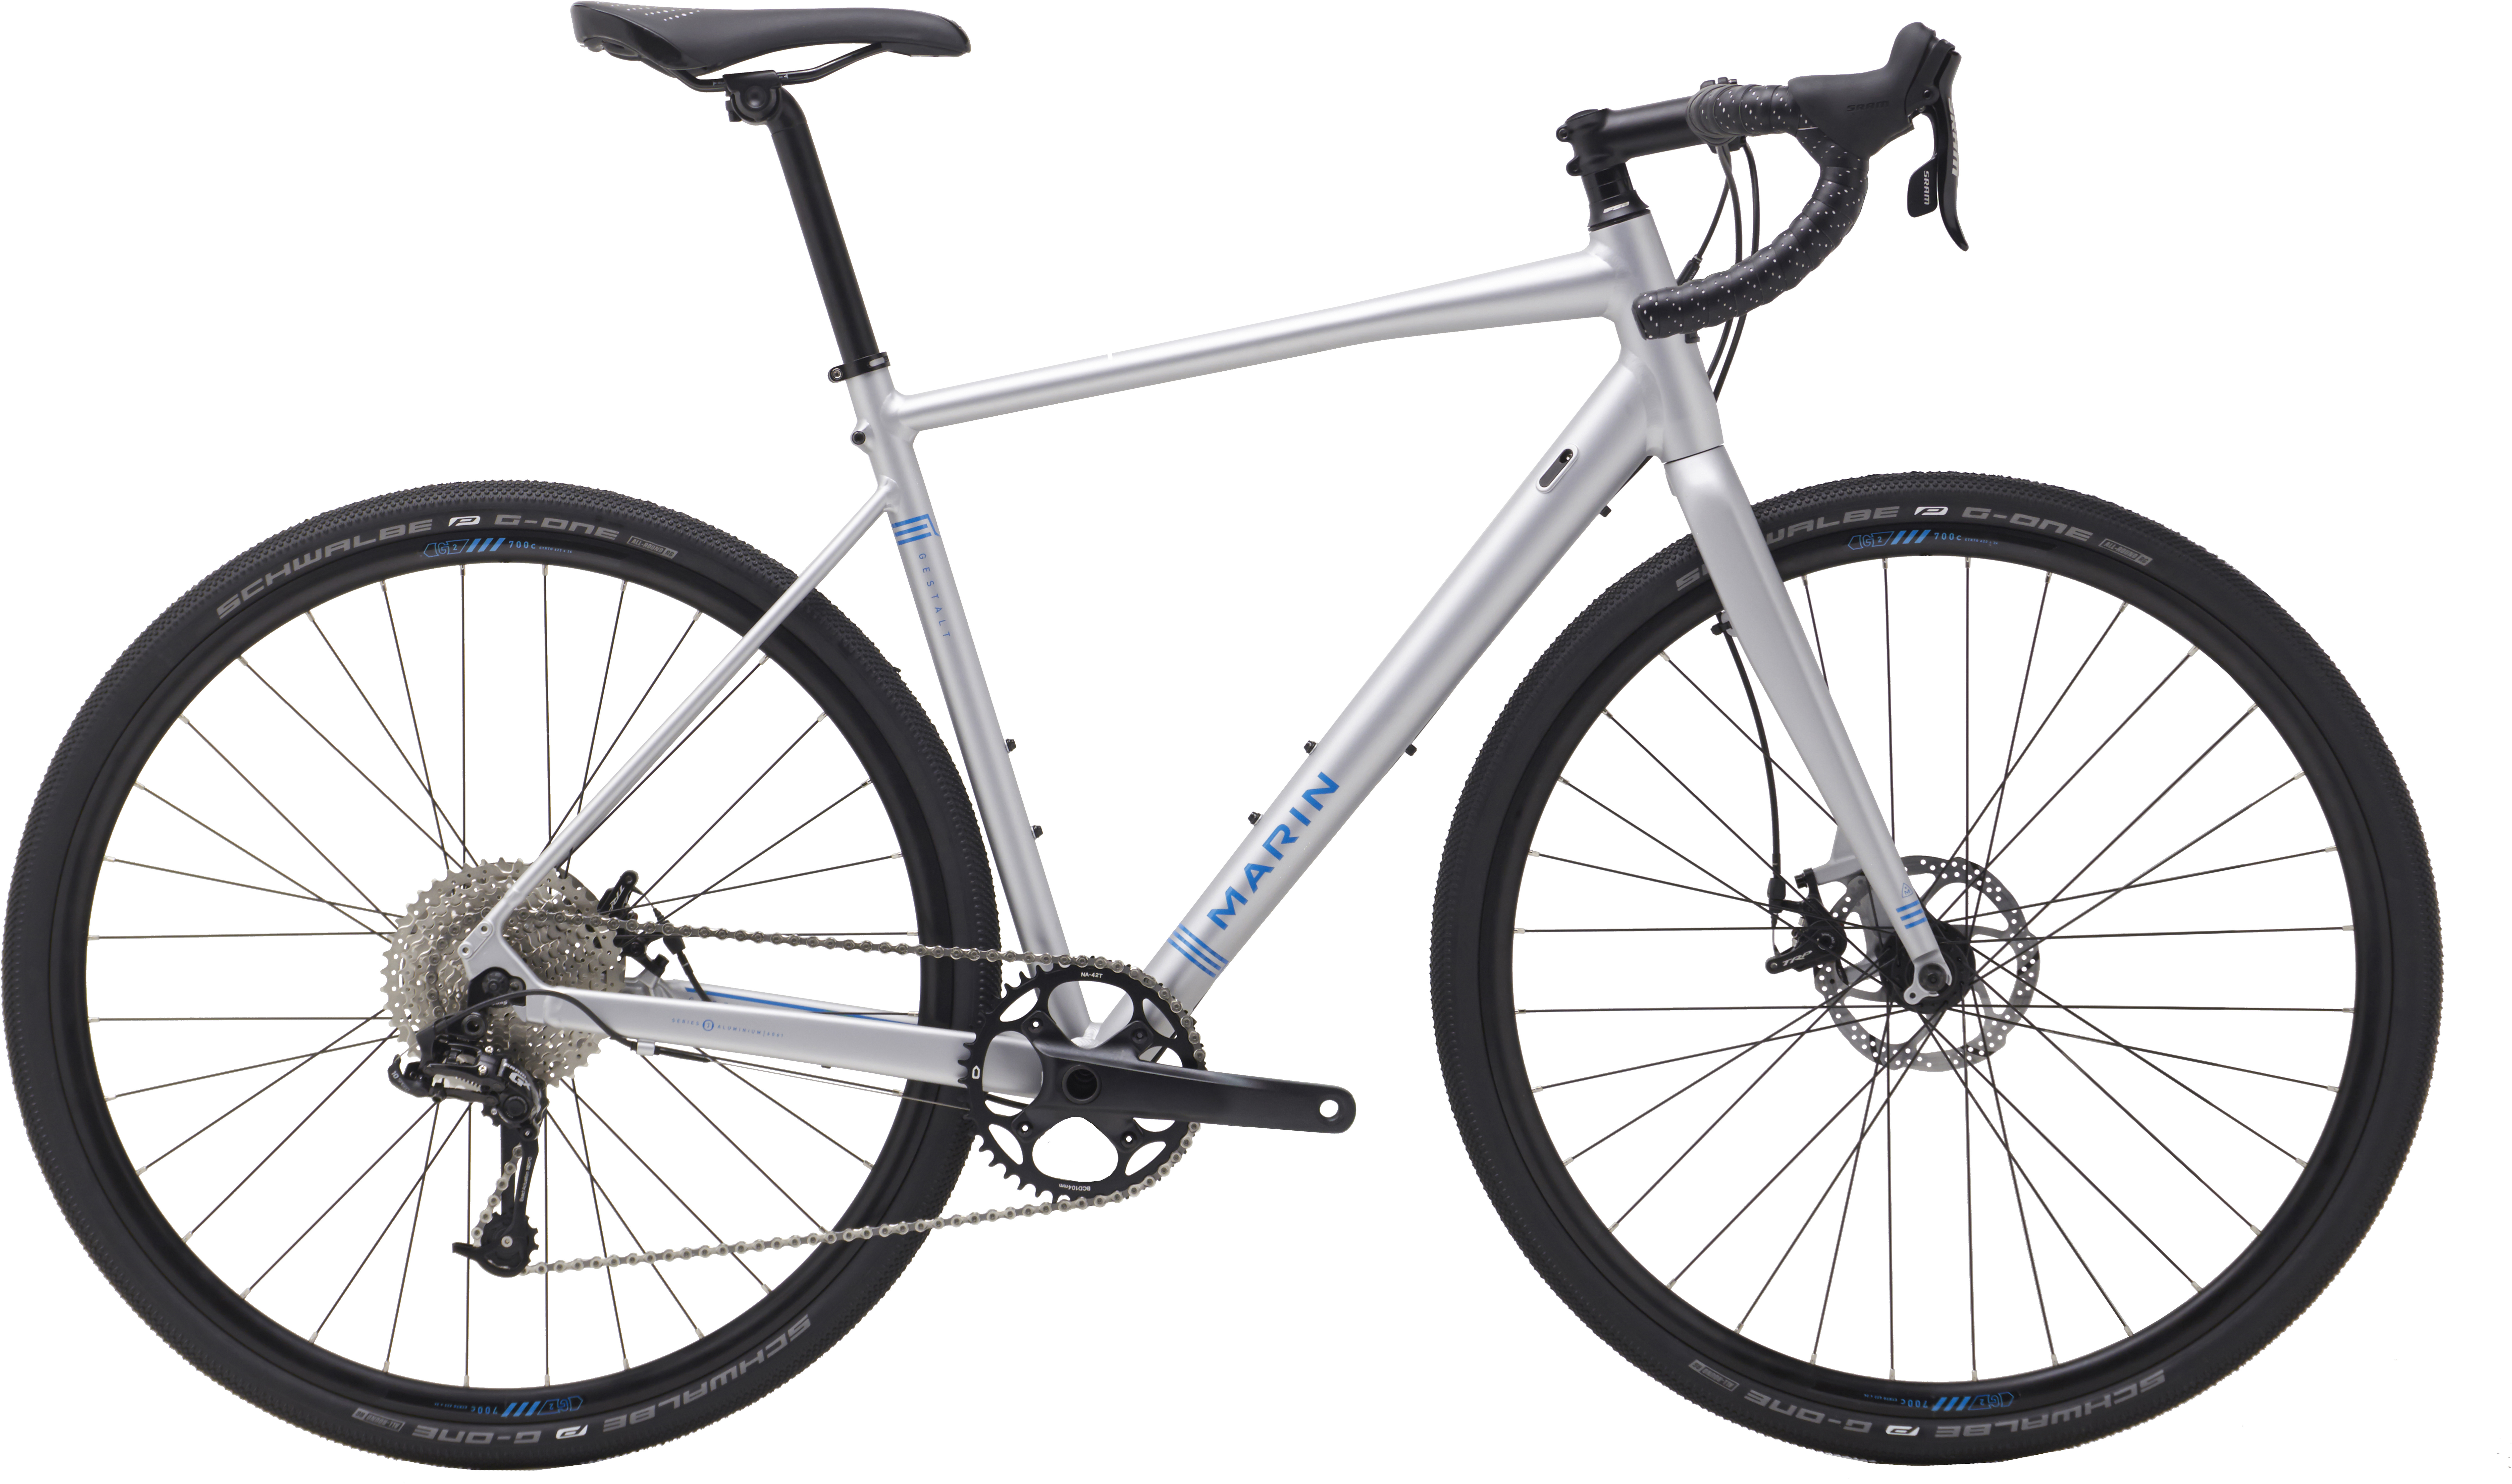 1db101912a8 Road Bike Buying Guide